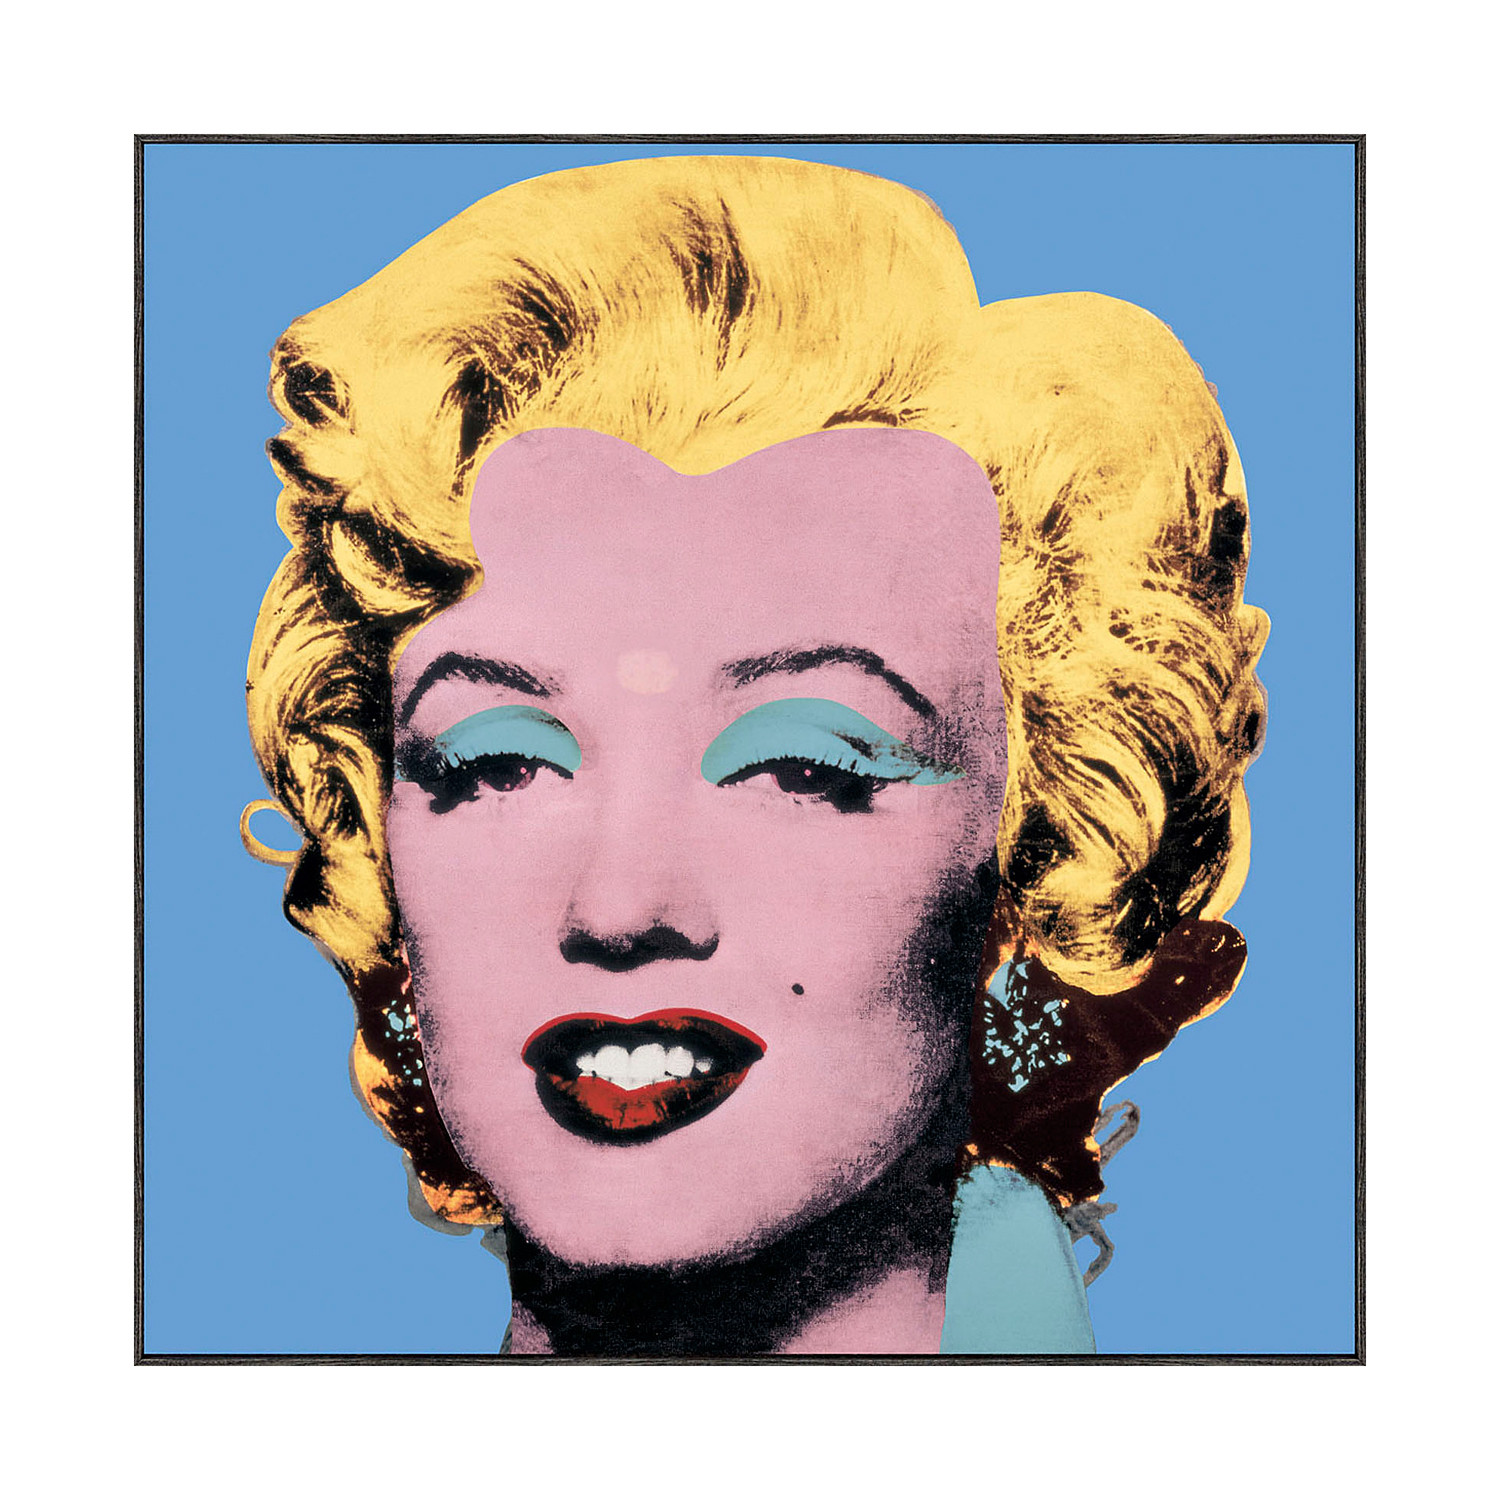 Marilyn Pop Art Andy Warhol Andy Warhol Shot Blue Marilyn 1964 Andy Warhol